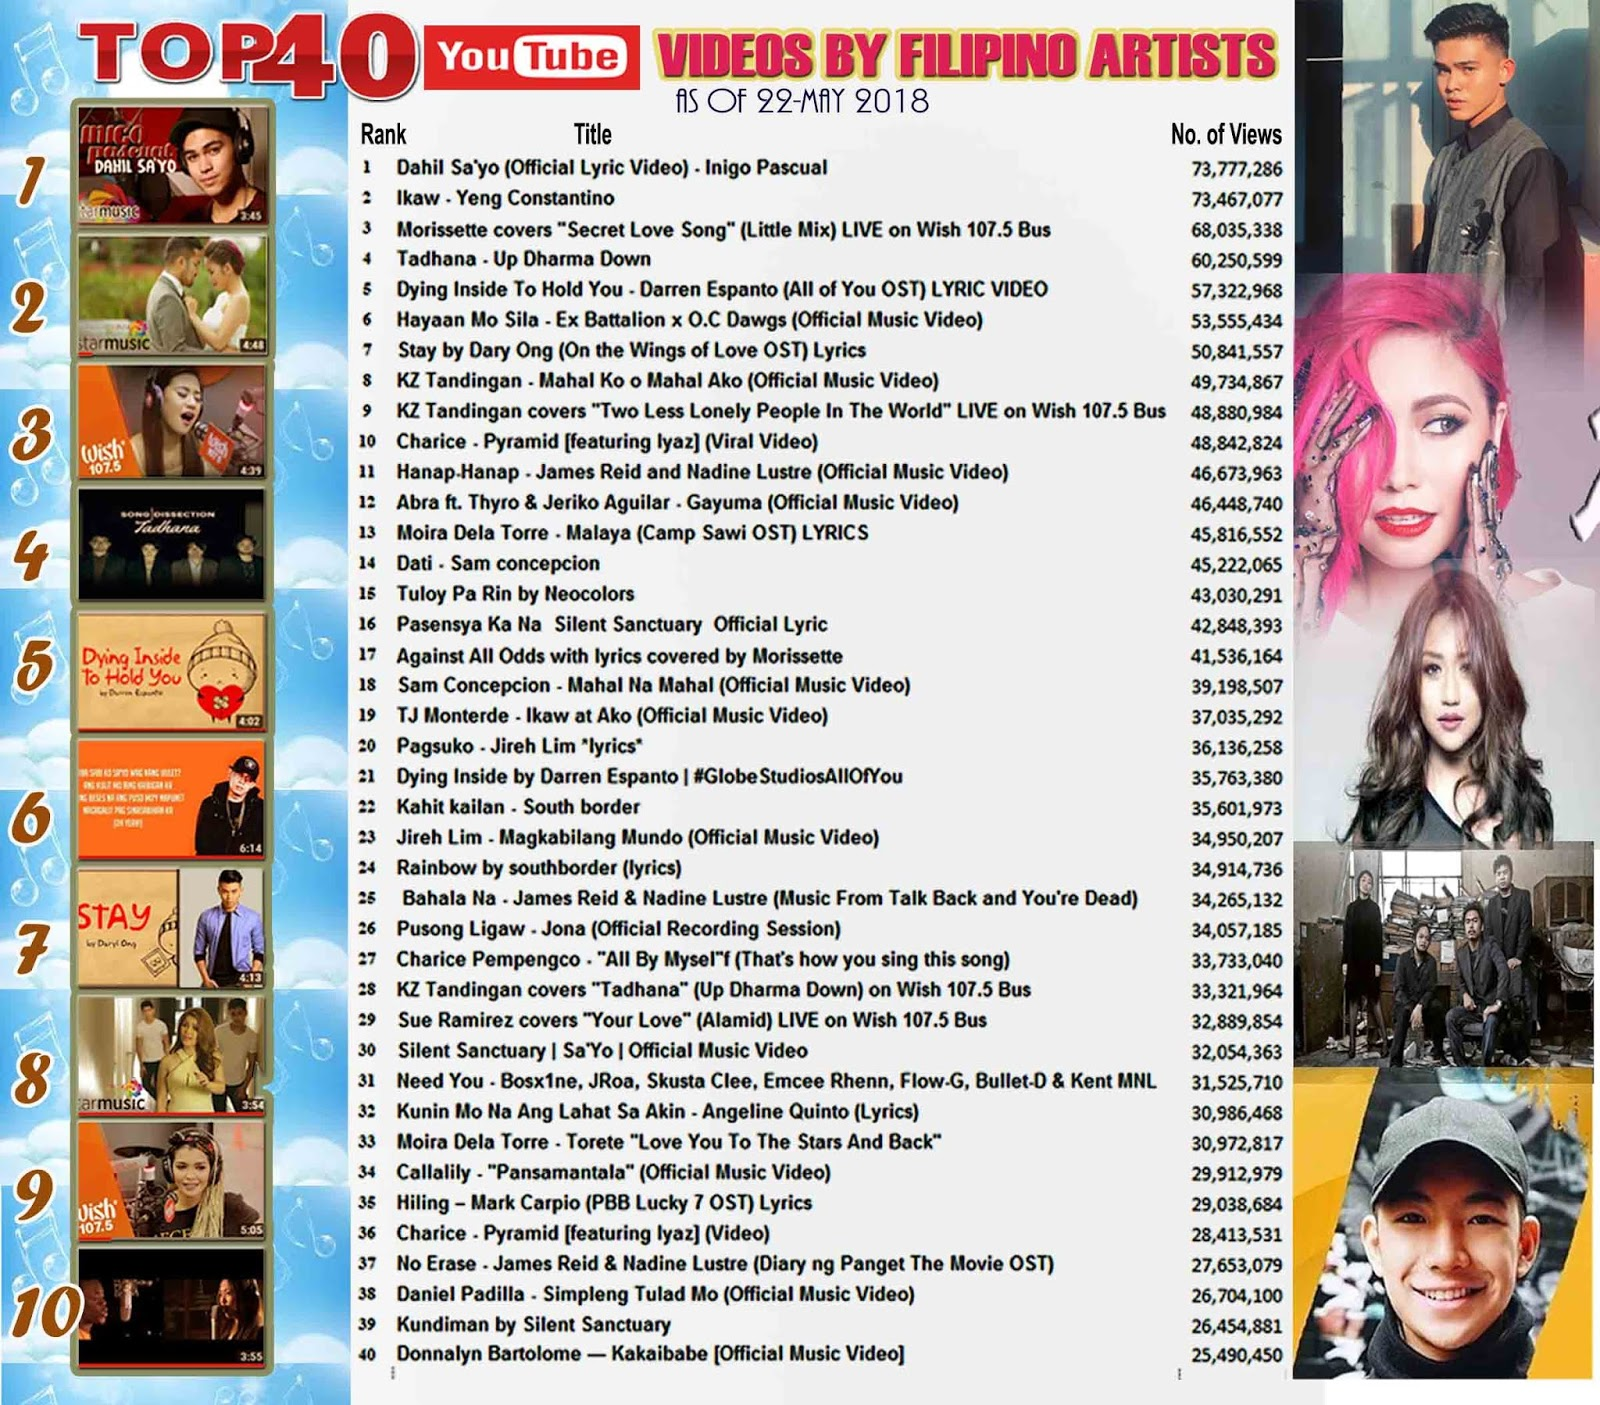 Nextfactorph Dahil Sa Yo By Inigo Pascual Is Youtube S Most Viewed Music Video By Filipino Artist